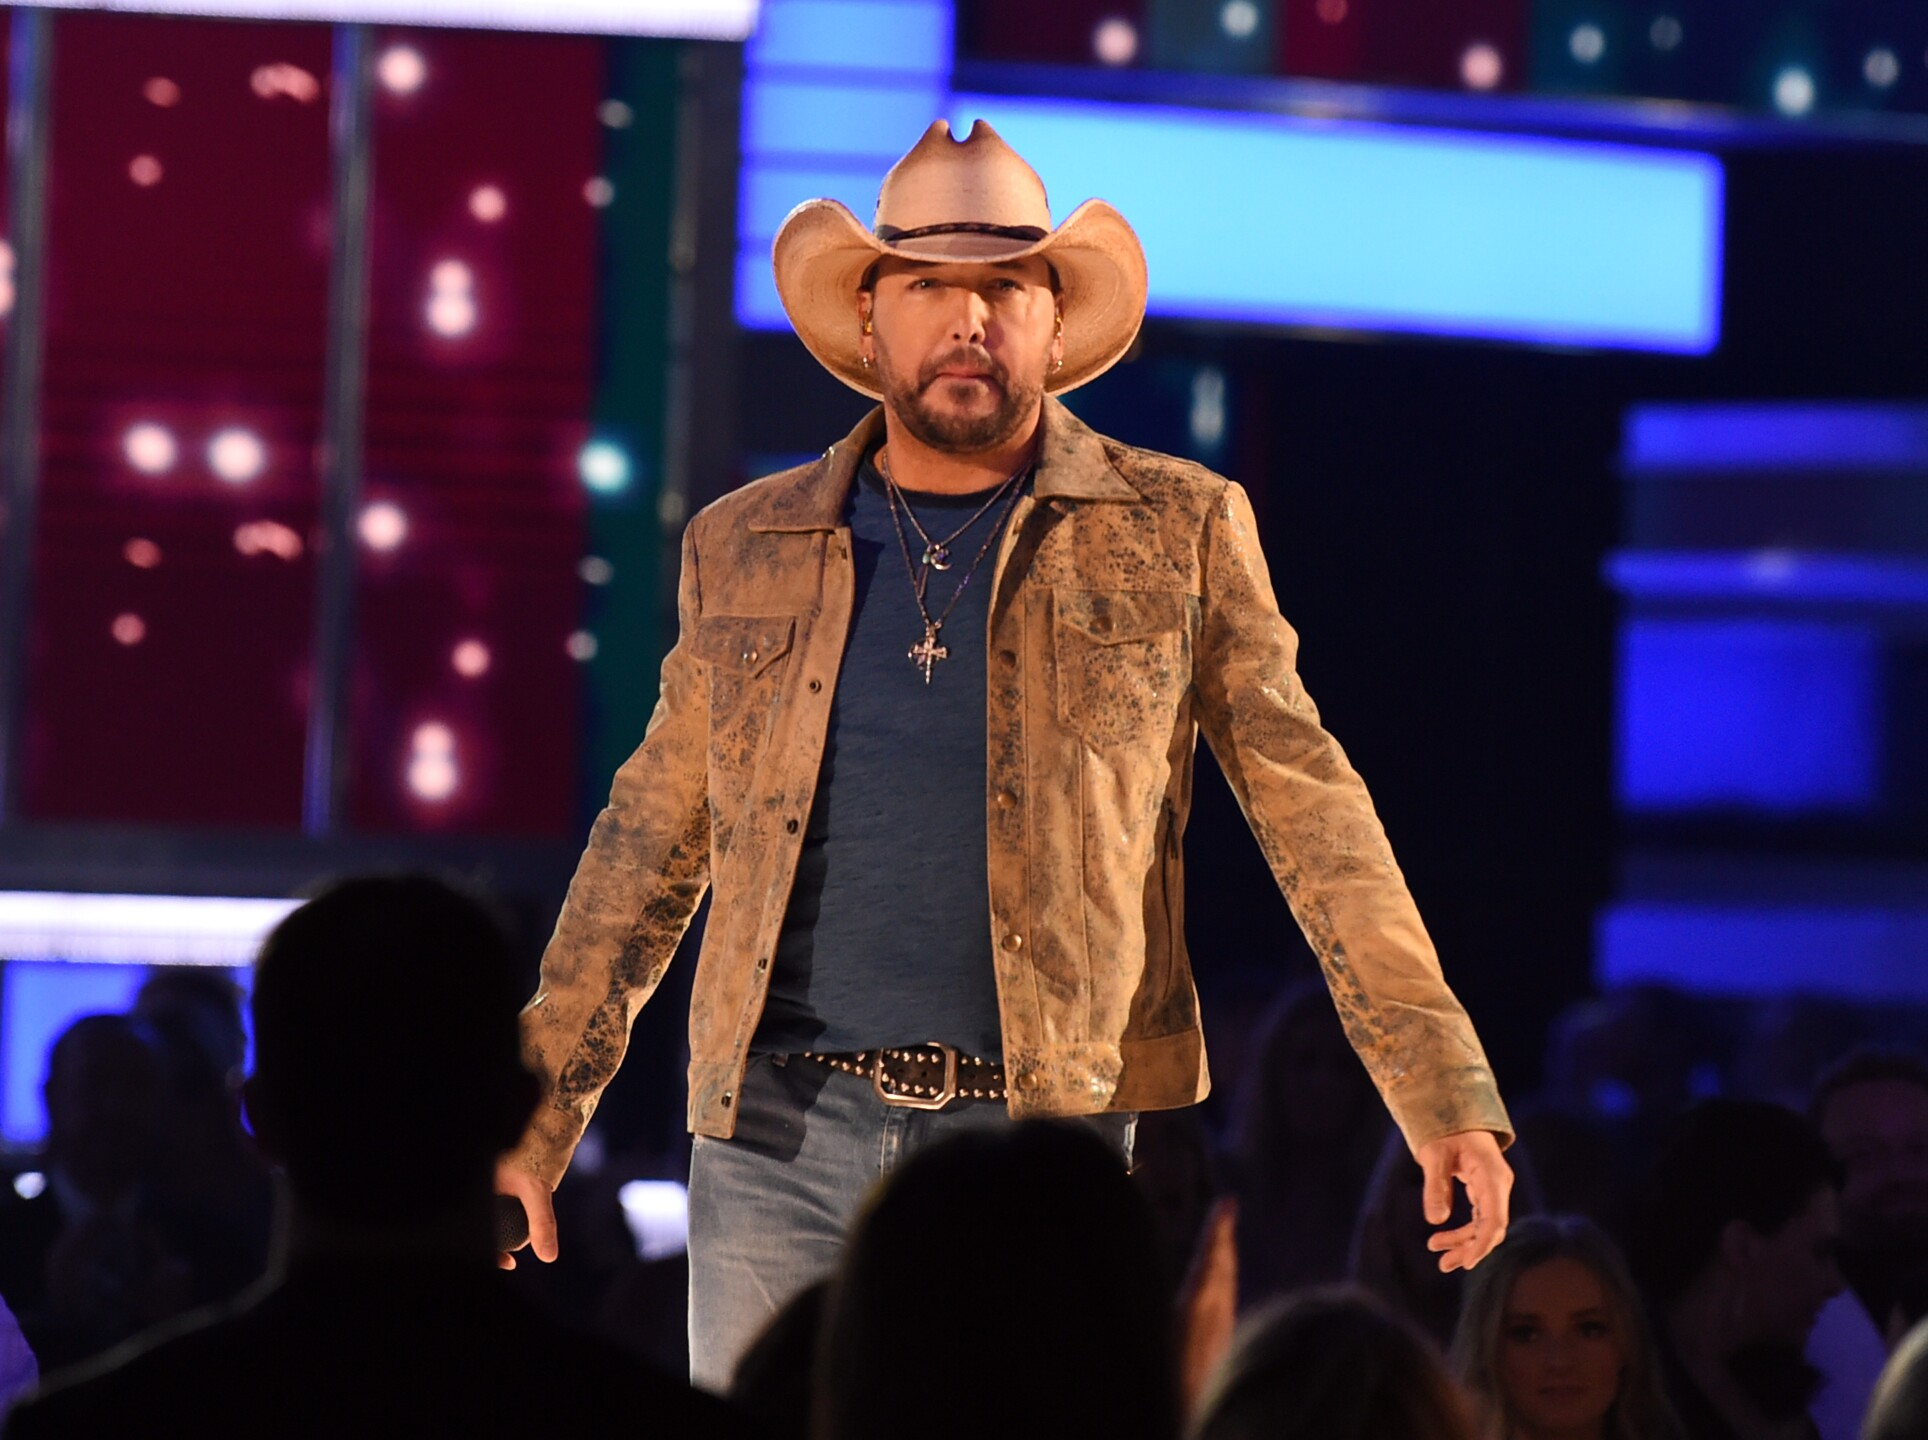 Jason Aldean to perform June 28 at Summerfest